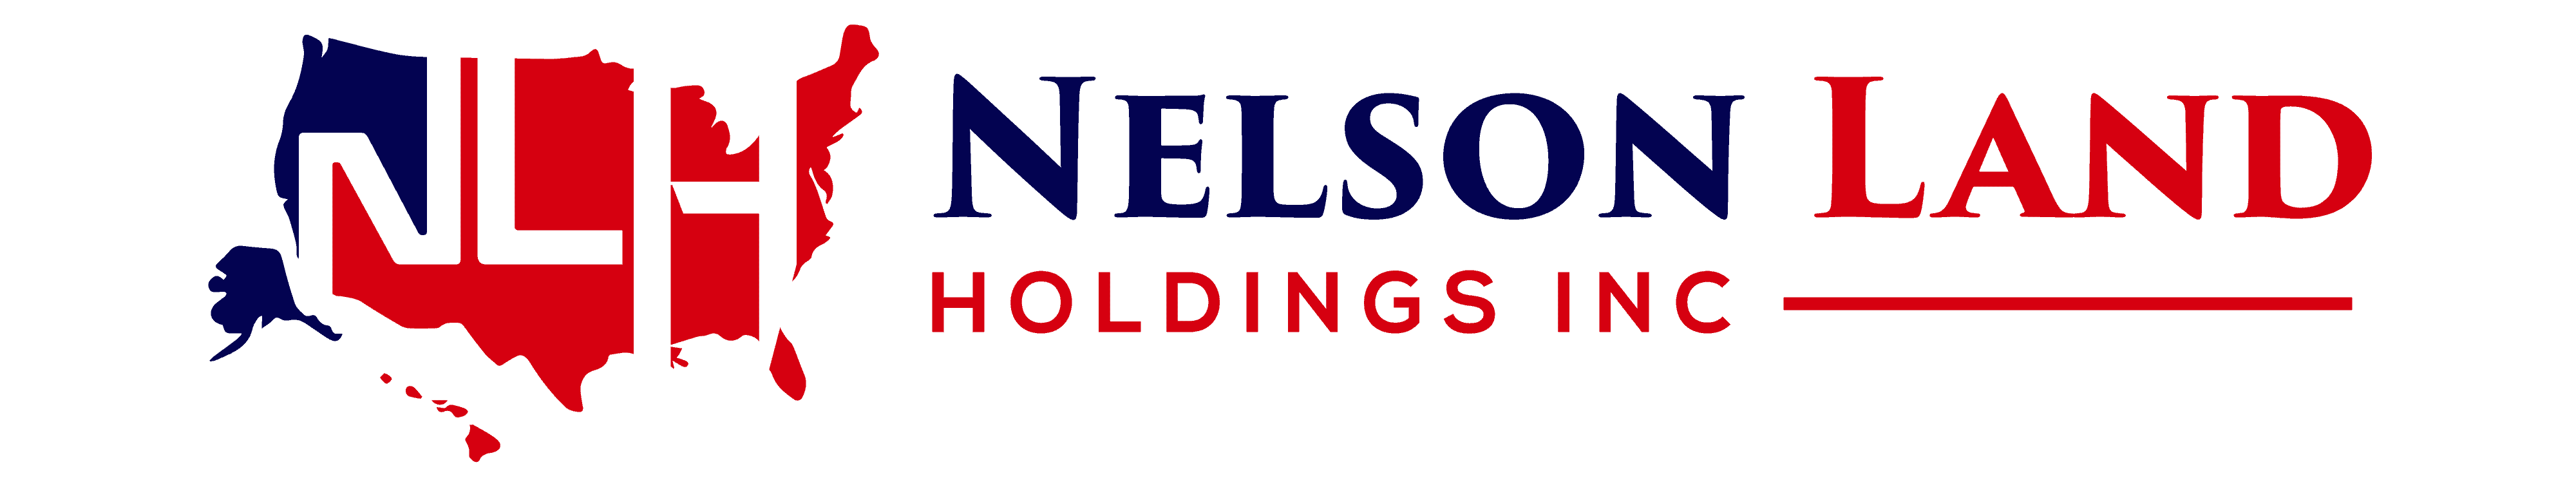 Nelson Land Holdings, Inc.